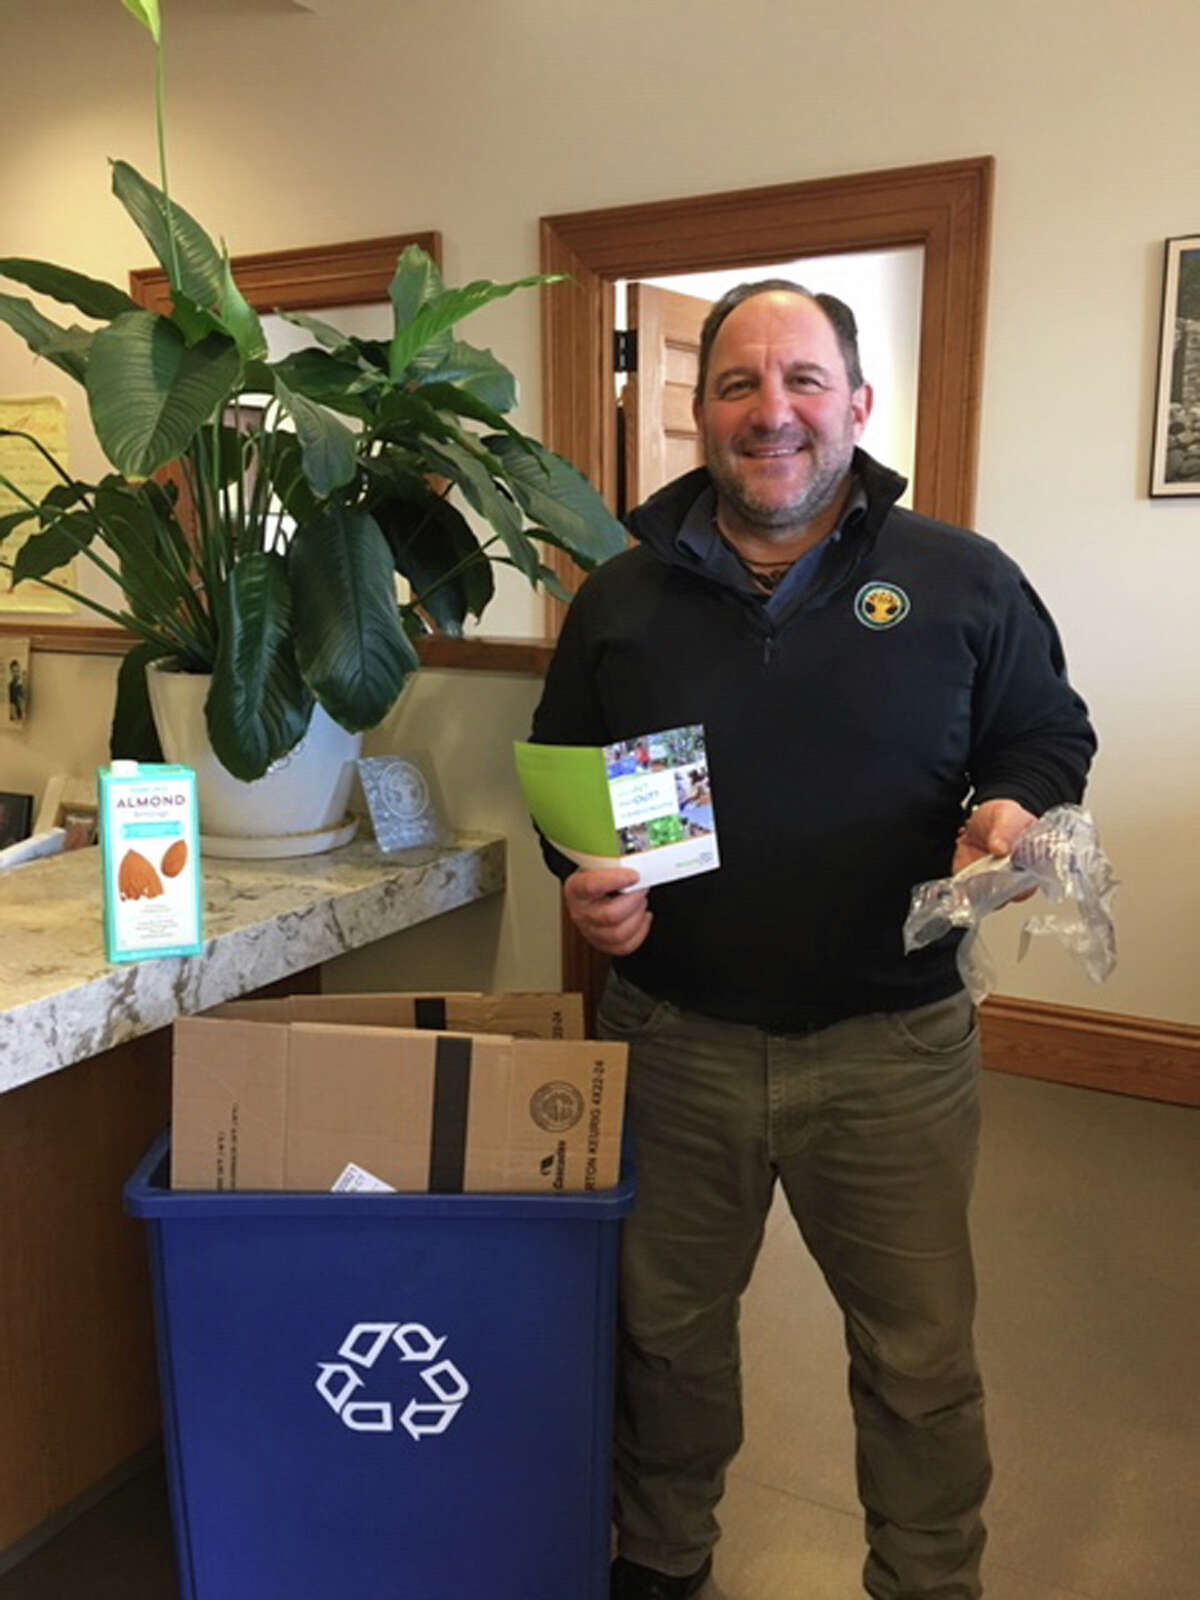 Tiger Mann, New Canaan's director of Public Works presented Recycling 101: What's In, What's Out, and Why, in April, 2019, at the New Canaan Library. Contributed photo